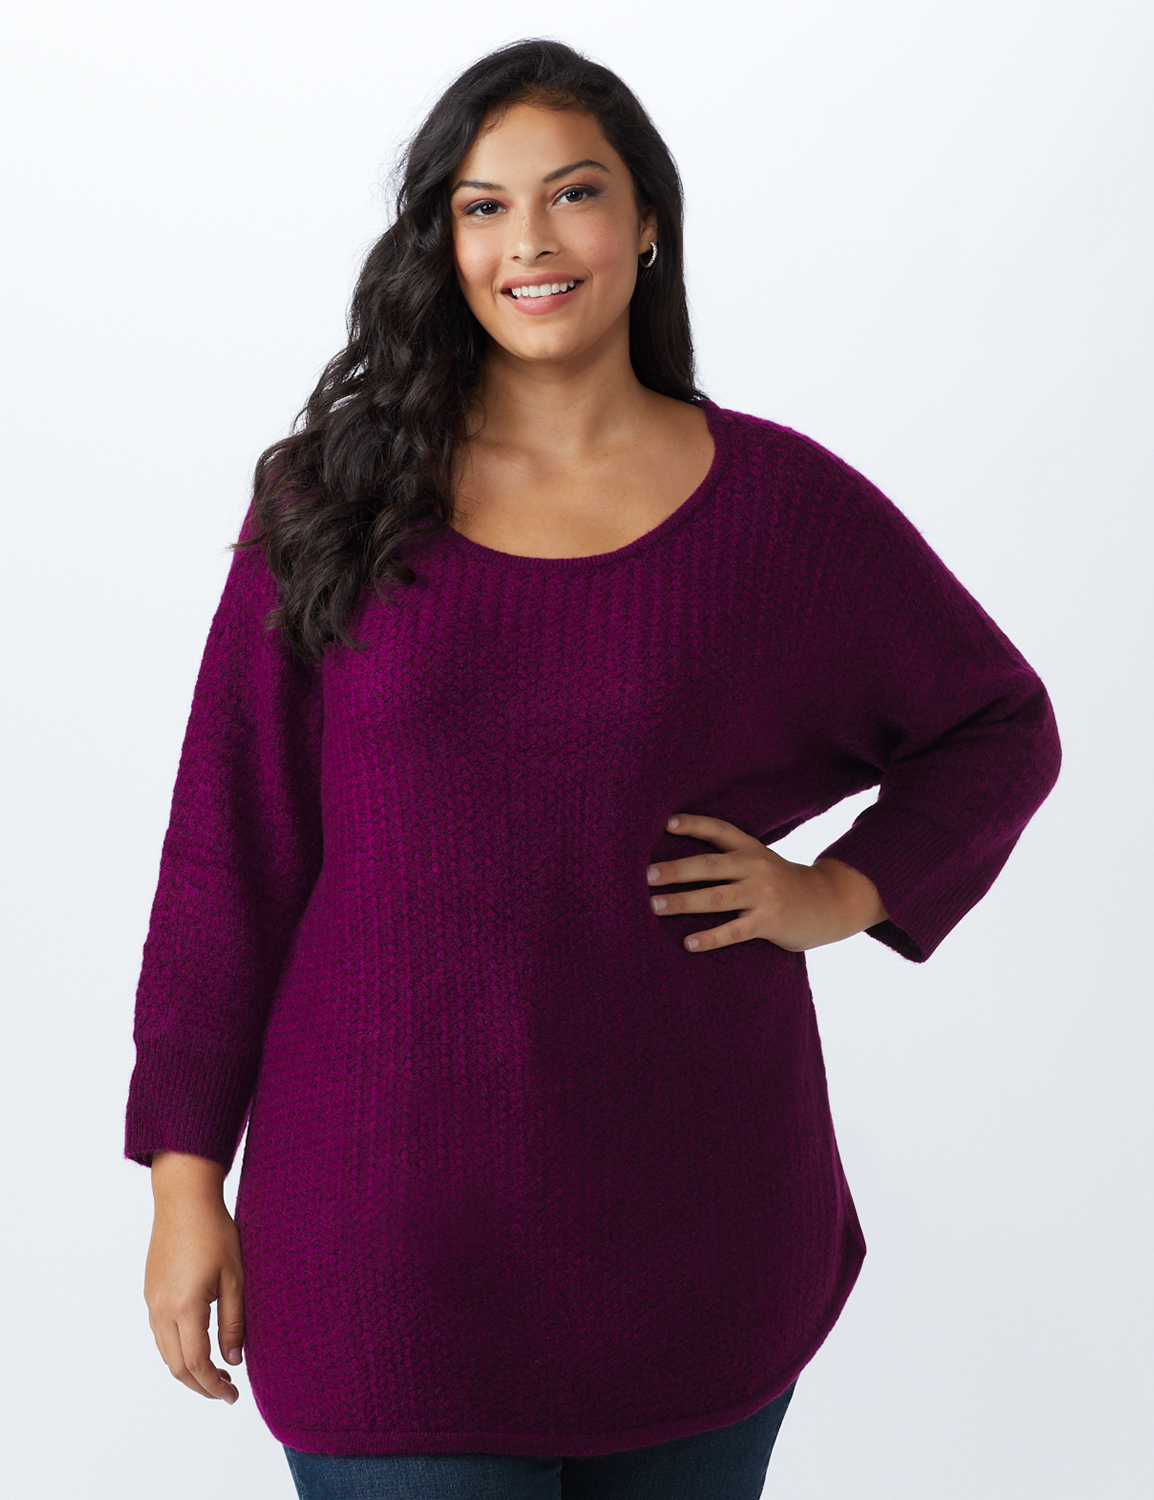 Westport Basketweave Stitch Curved Hem Sweater - Plus - Berry Wine - Front